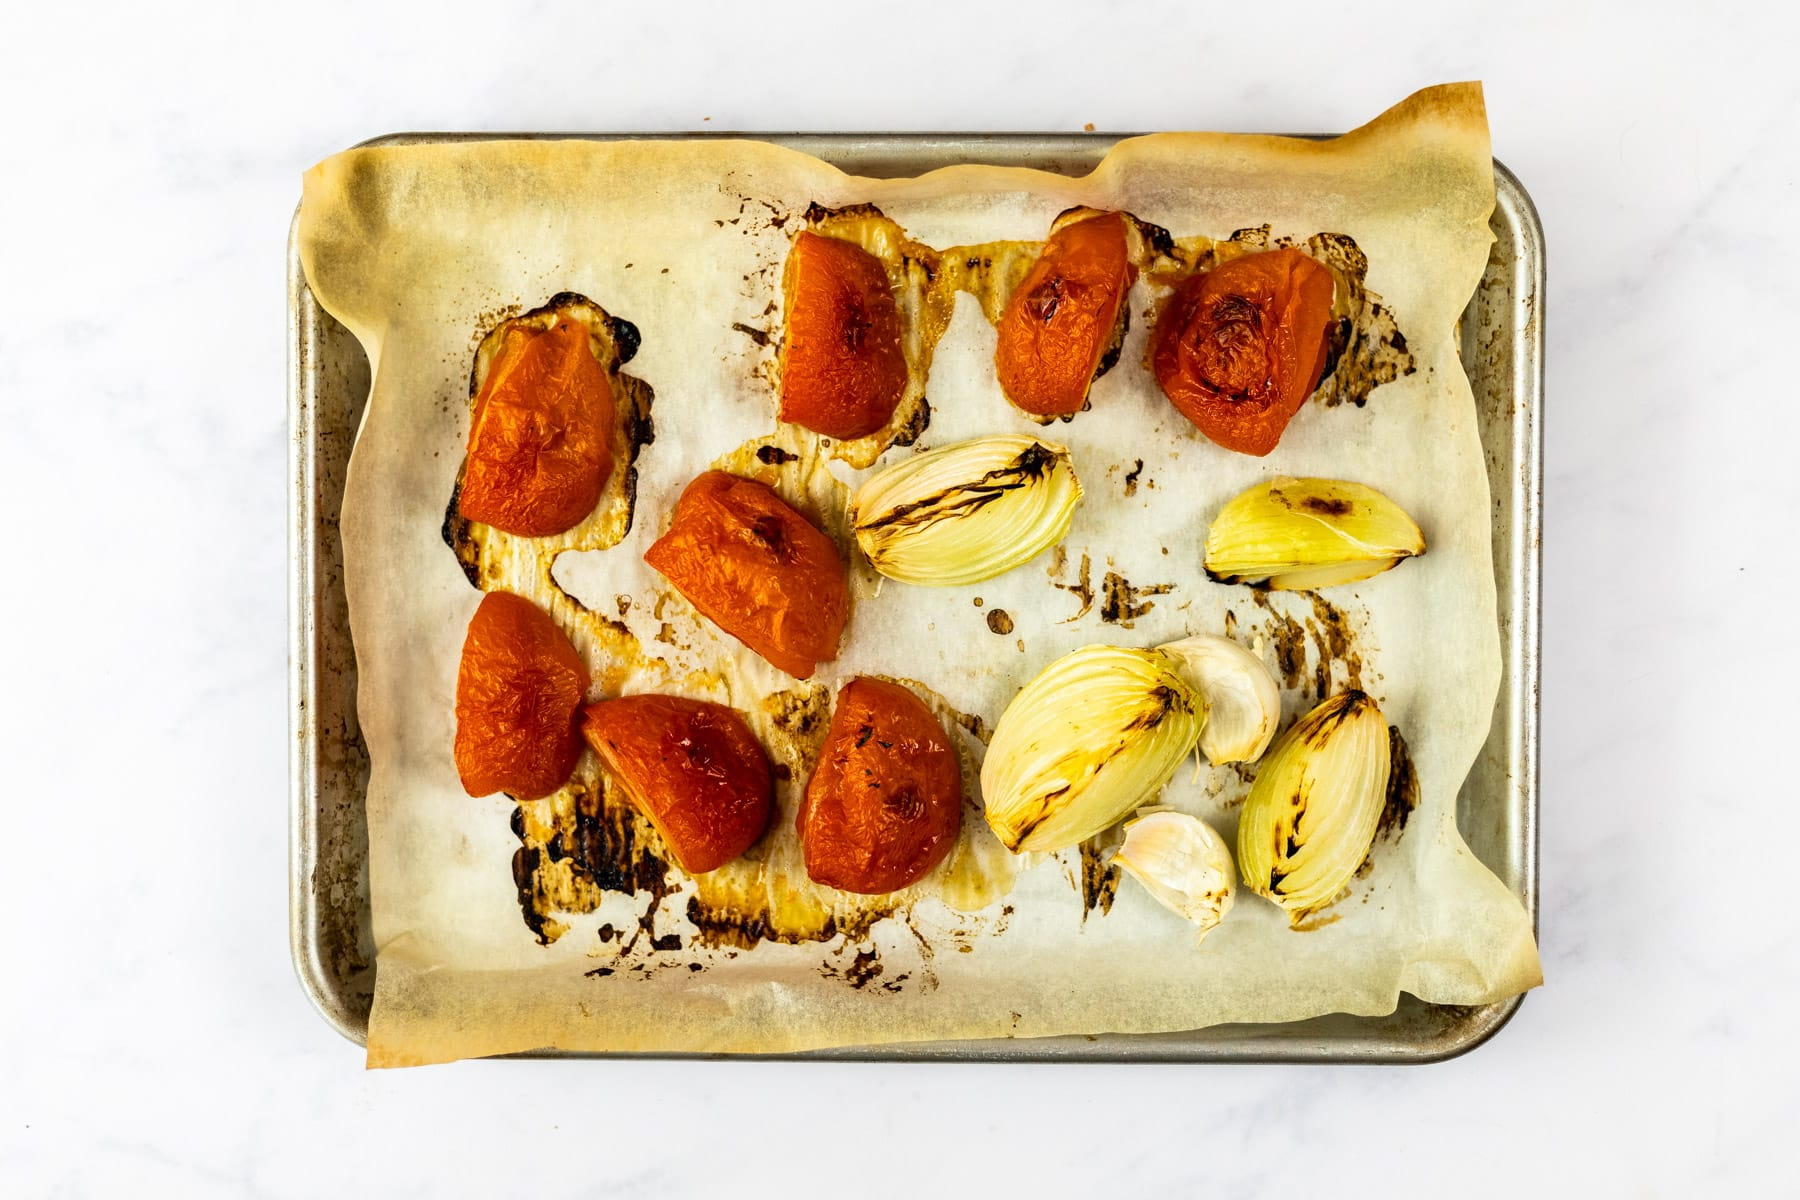 Roasted tomatoes, onion and garlic on a baking sheet.